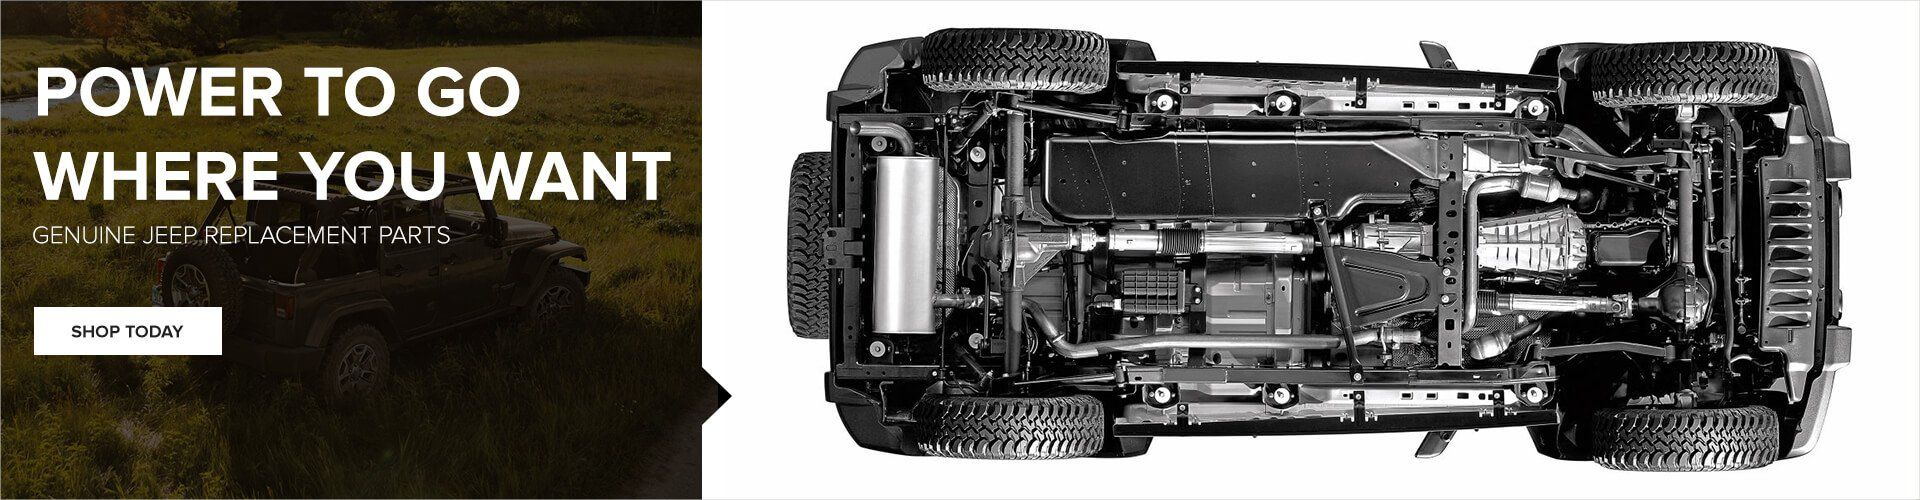 Genuine Jeep Replacement Parts